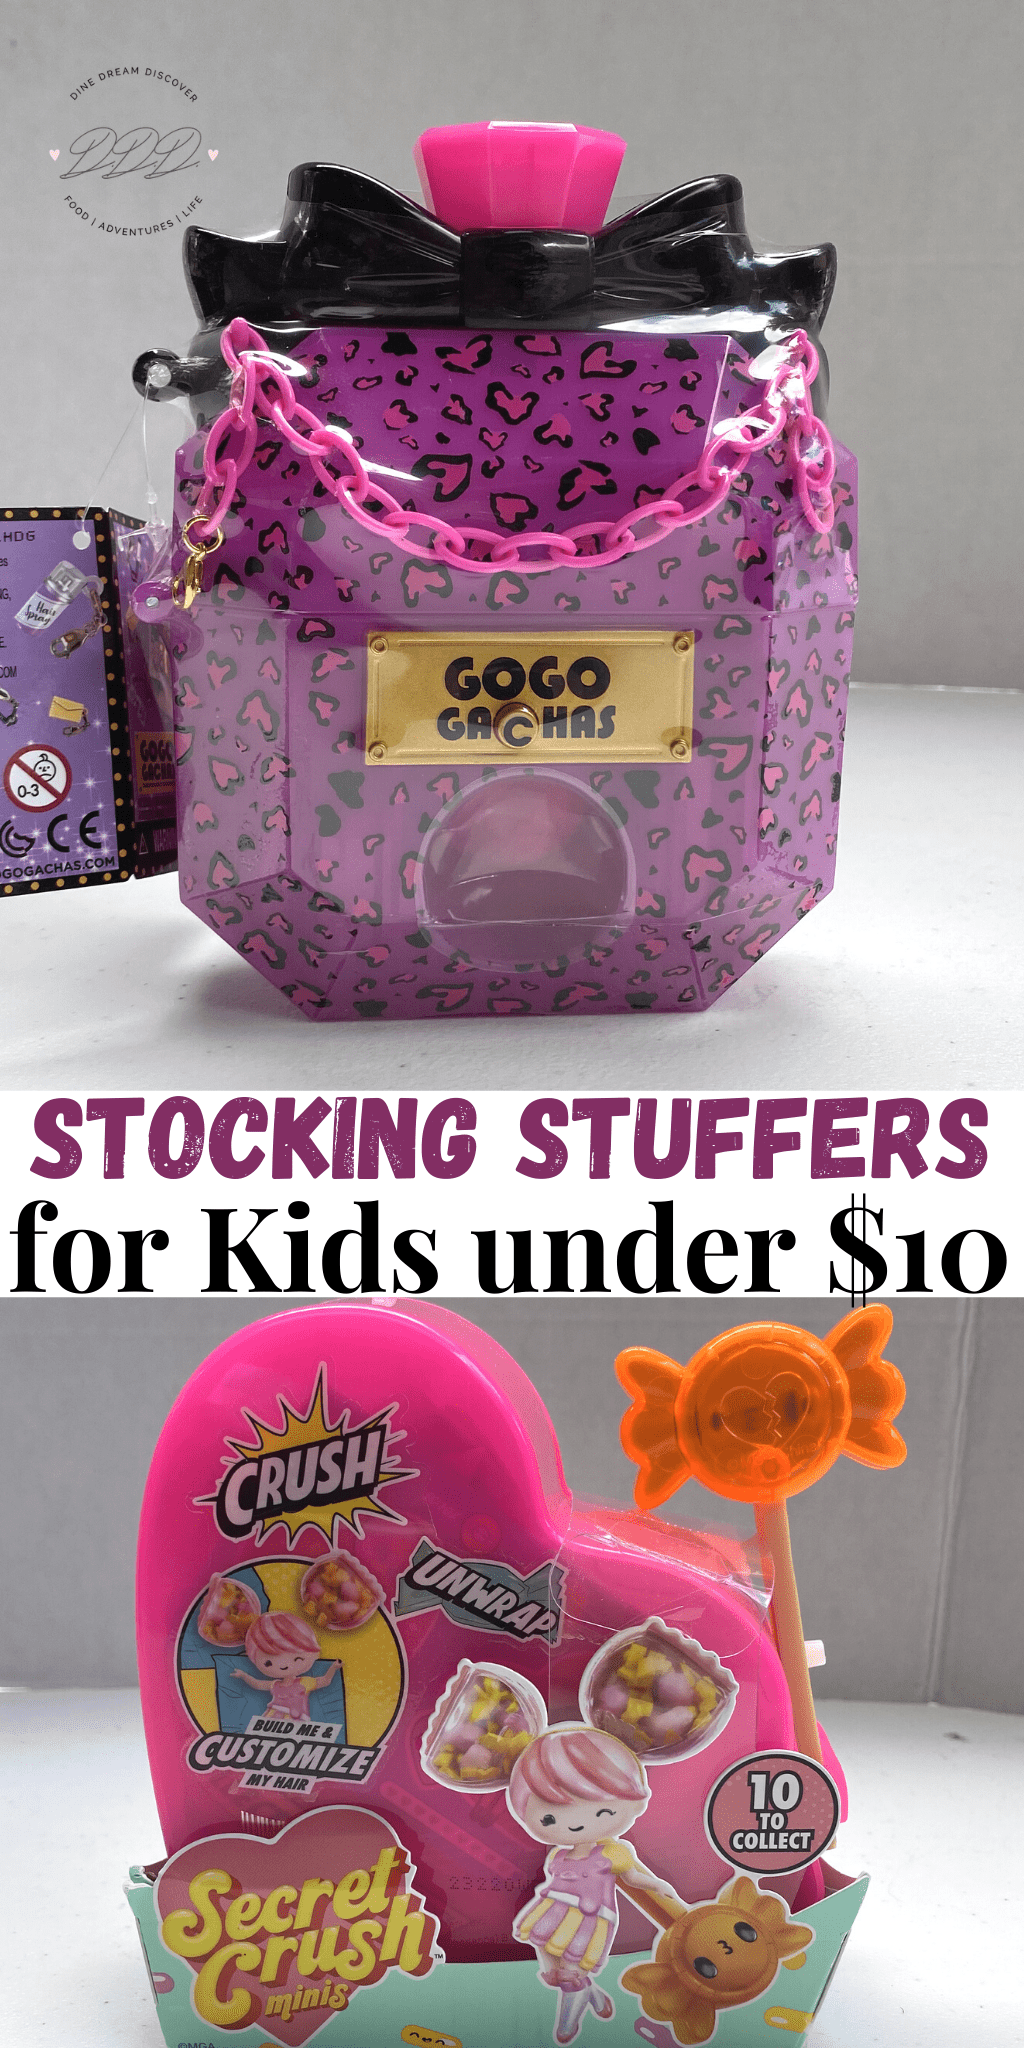 Best Stocking Stuffers for Kids under $10